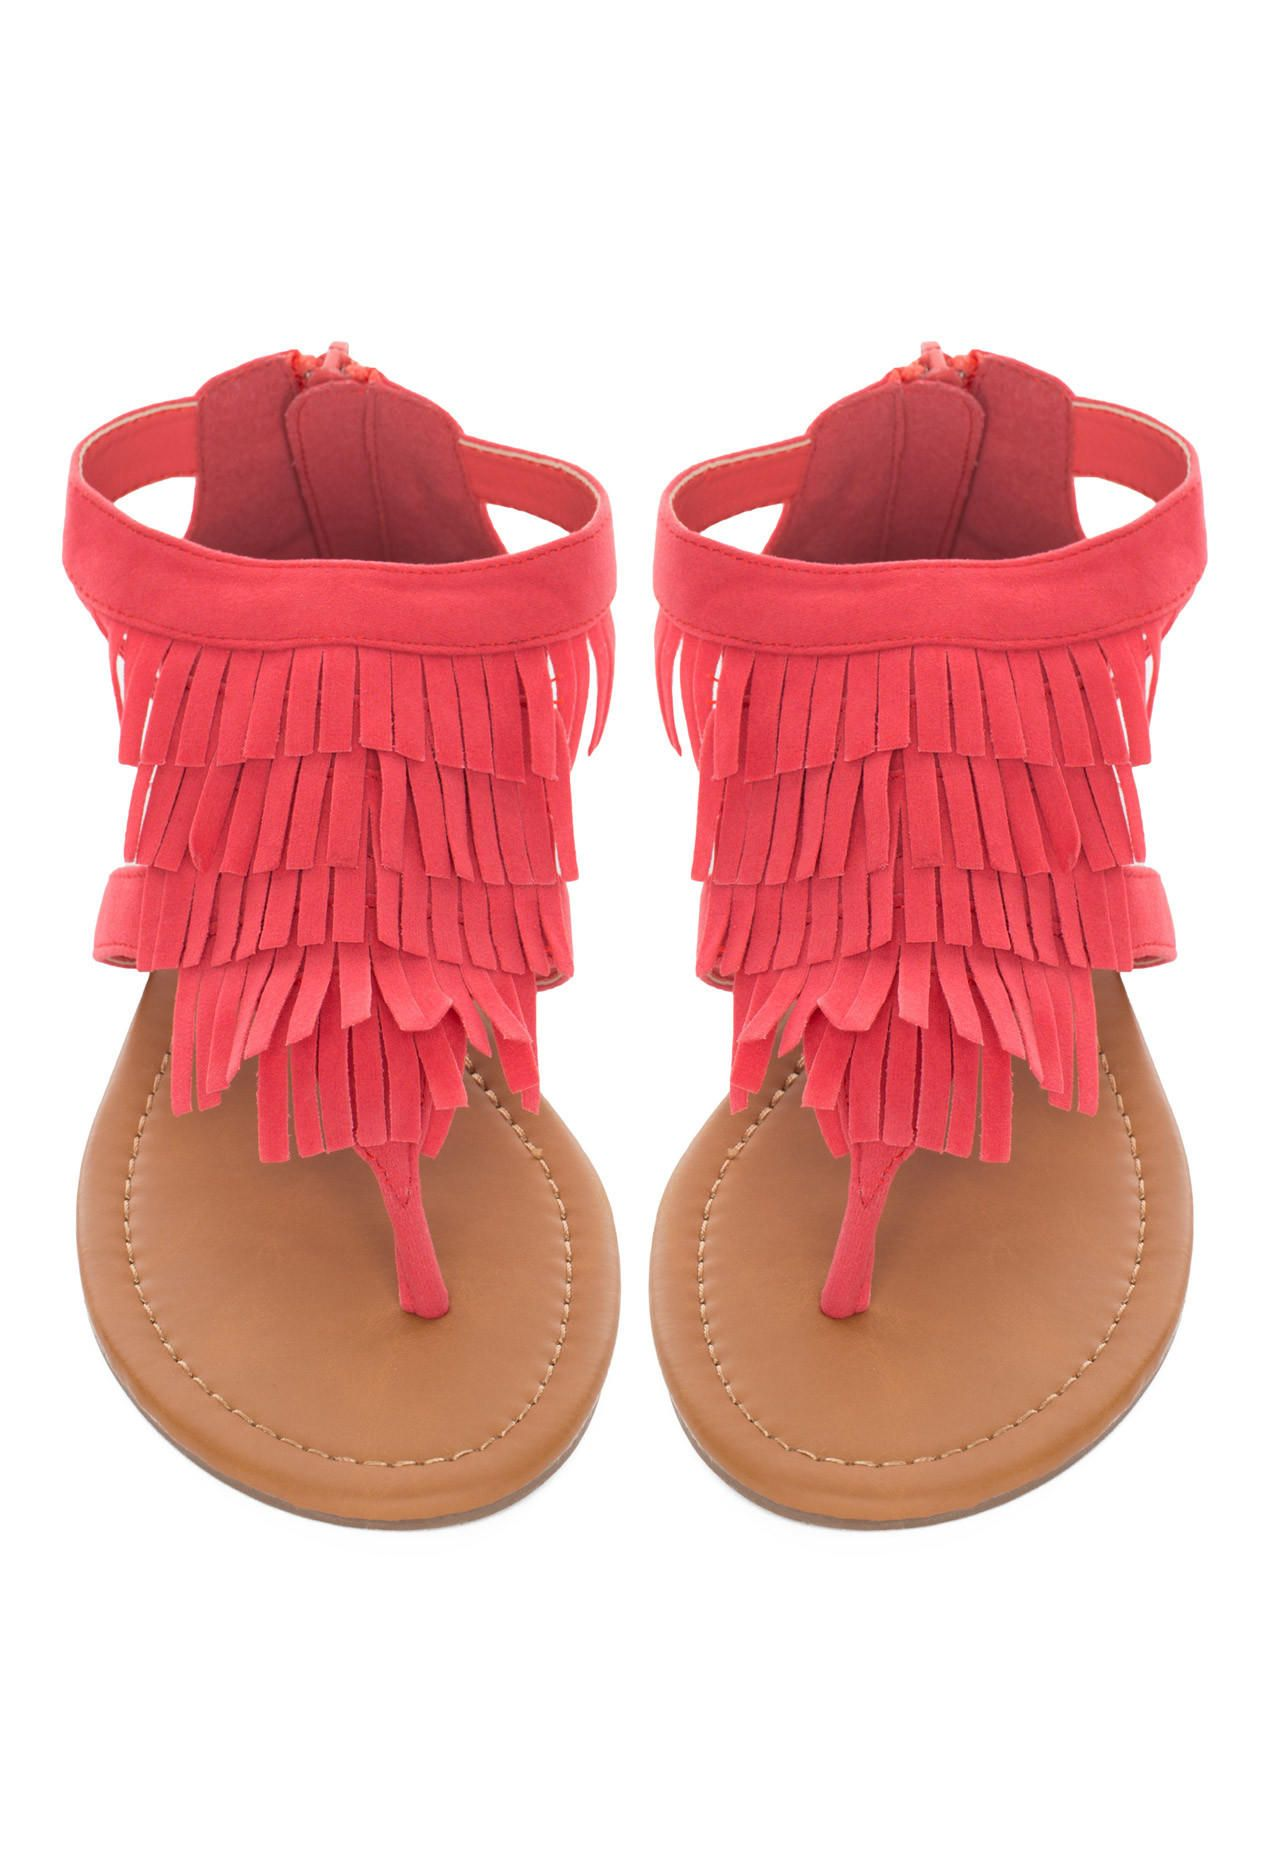 76065193853 Brisa Fringe Sandals - Coral from Shop Priceless. Saved to New Arrivals.  Shop more products from Shop Priceless on Wanelo.